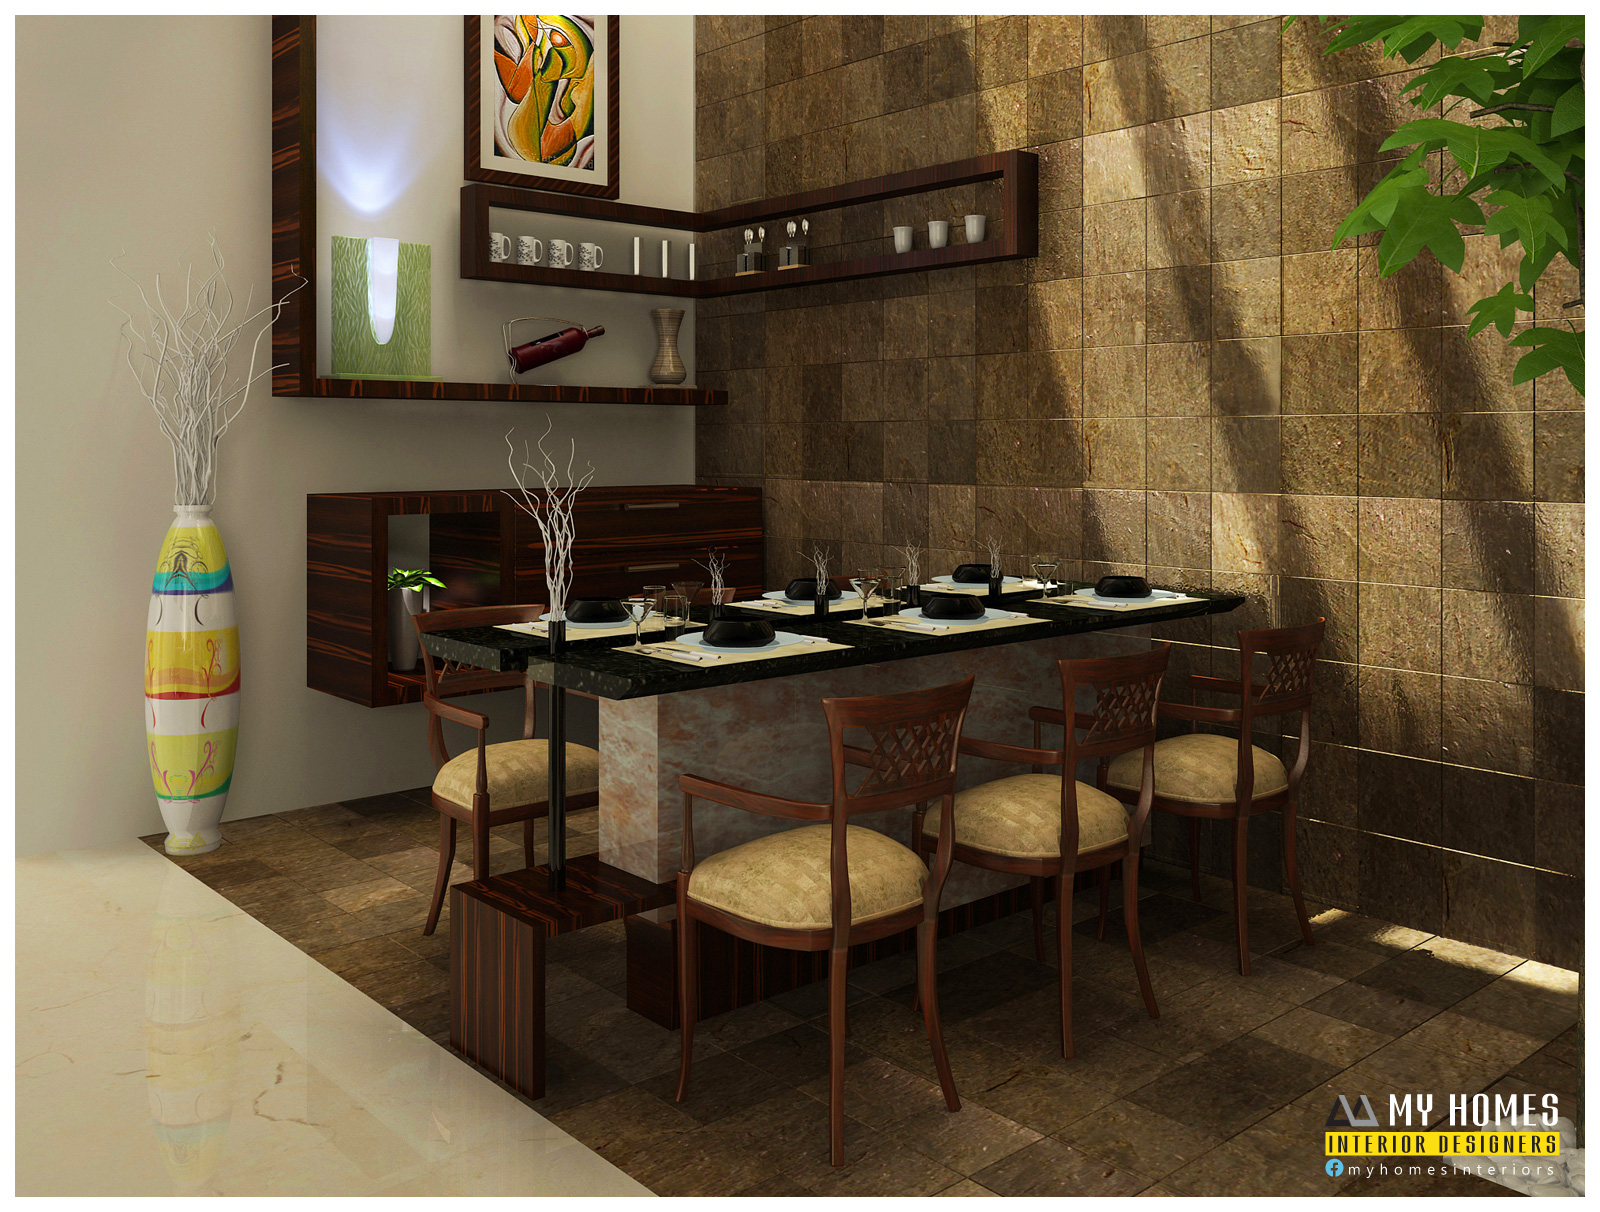 Interior design archives page 2 of 4 kerala interior for Dining room interior design 2016